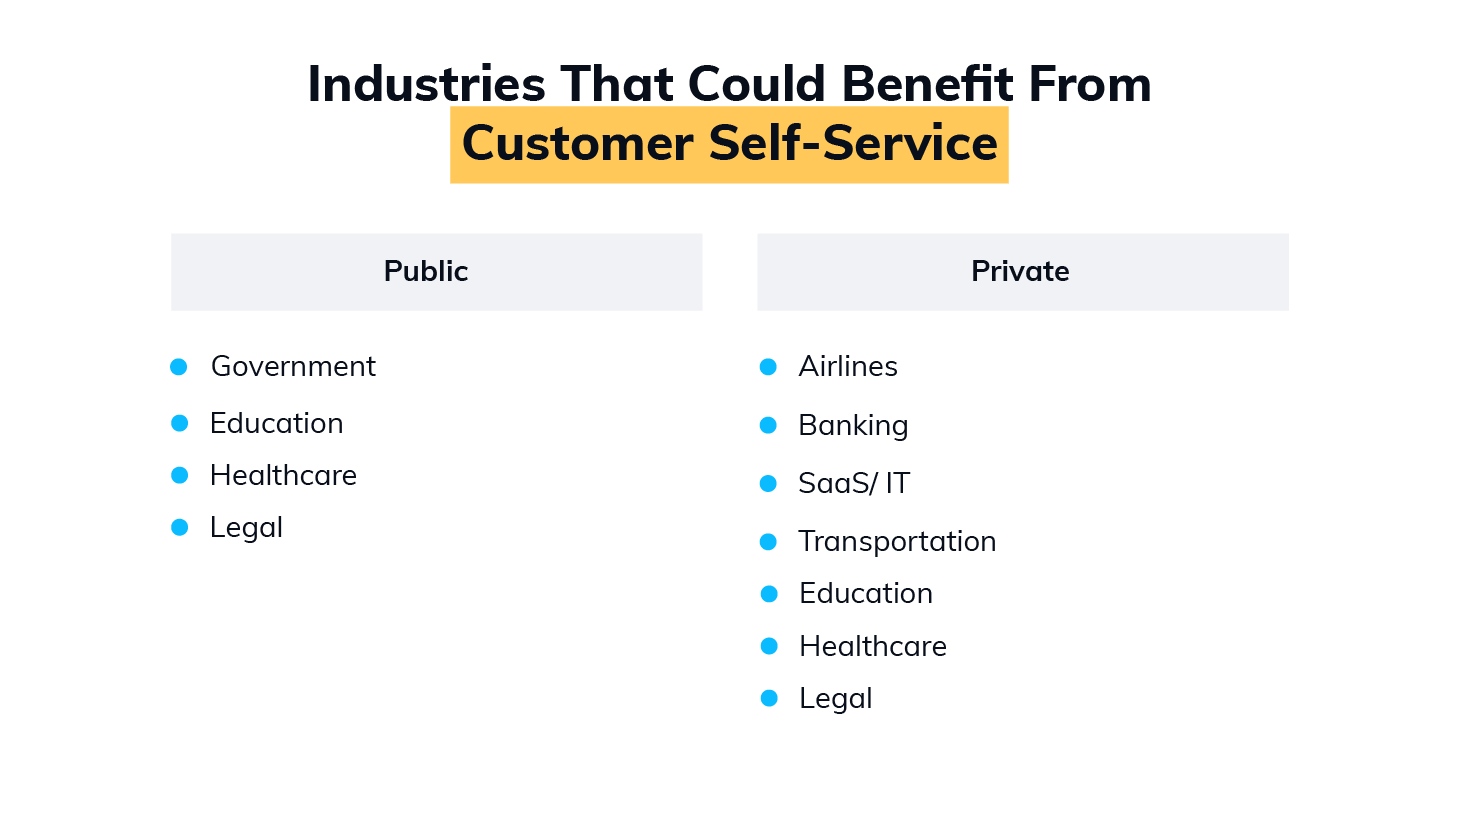 What Industries Would Benefit from Customer Self-Service the Most